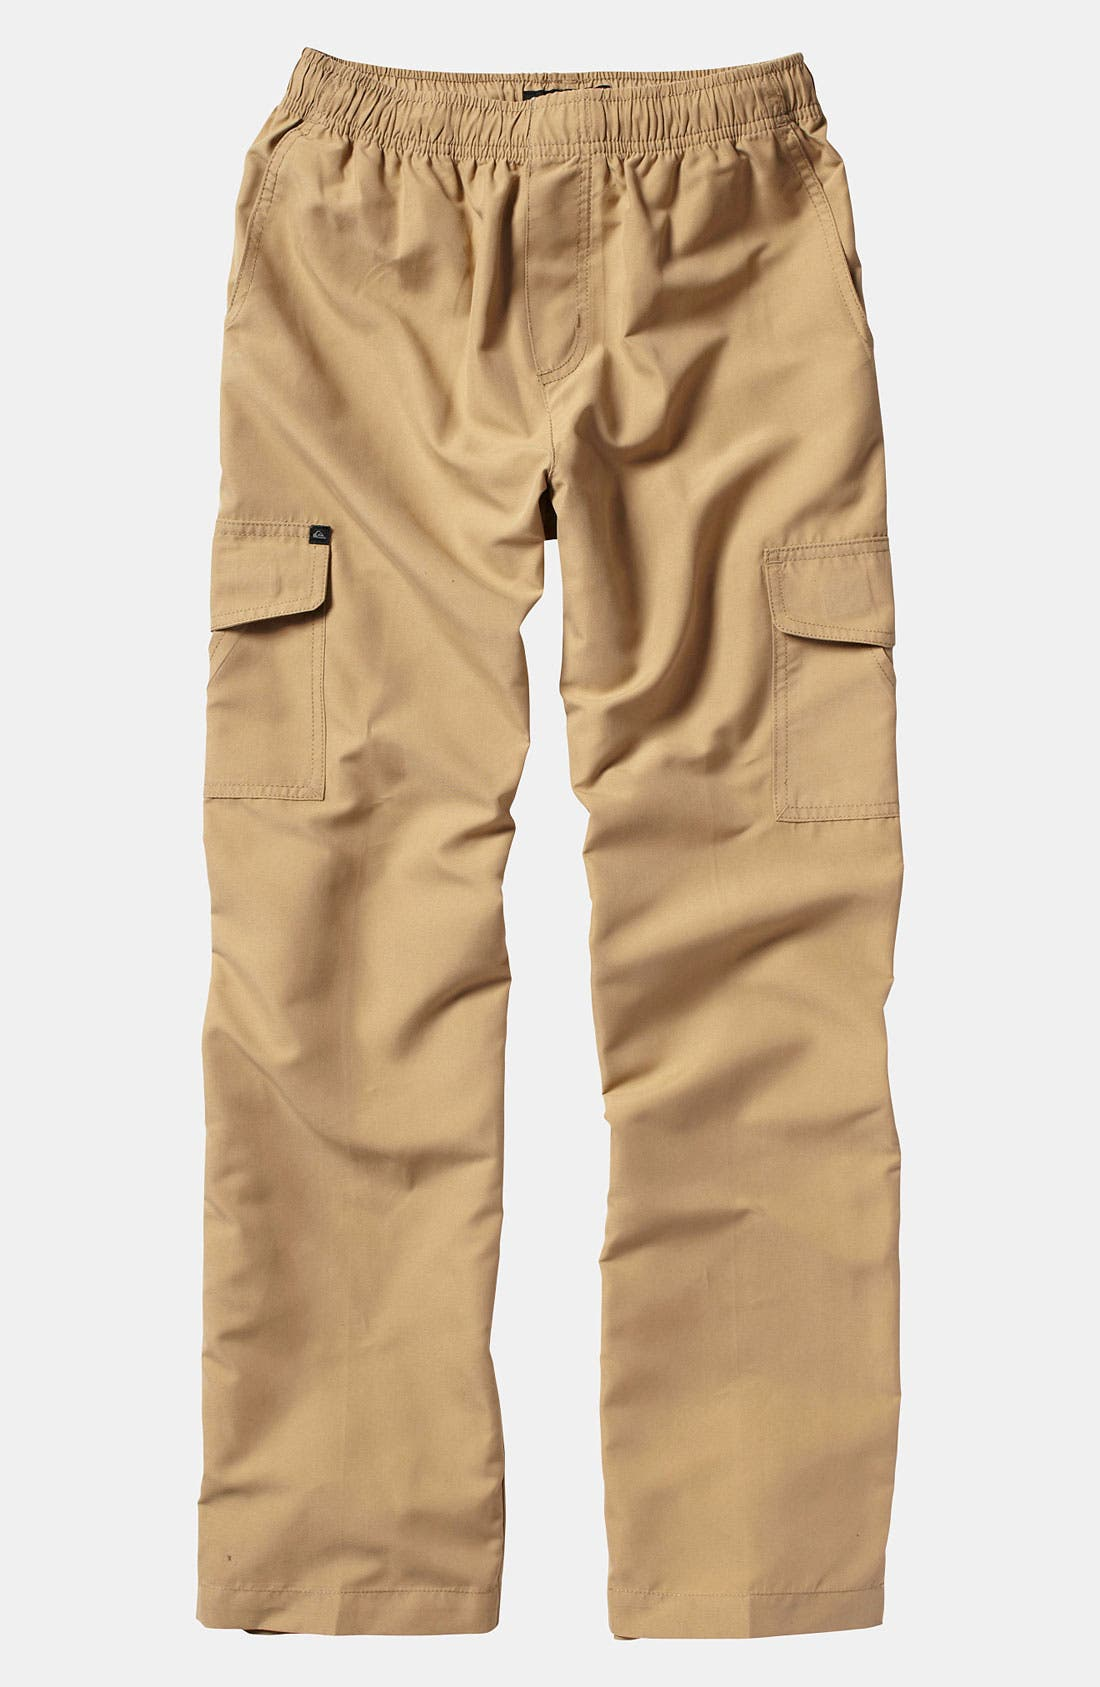 Alternate Image 1 Selected - Quiksilver 'Kamotion' Pants (Big Boys)